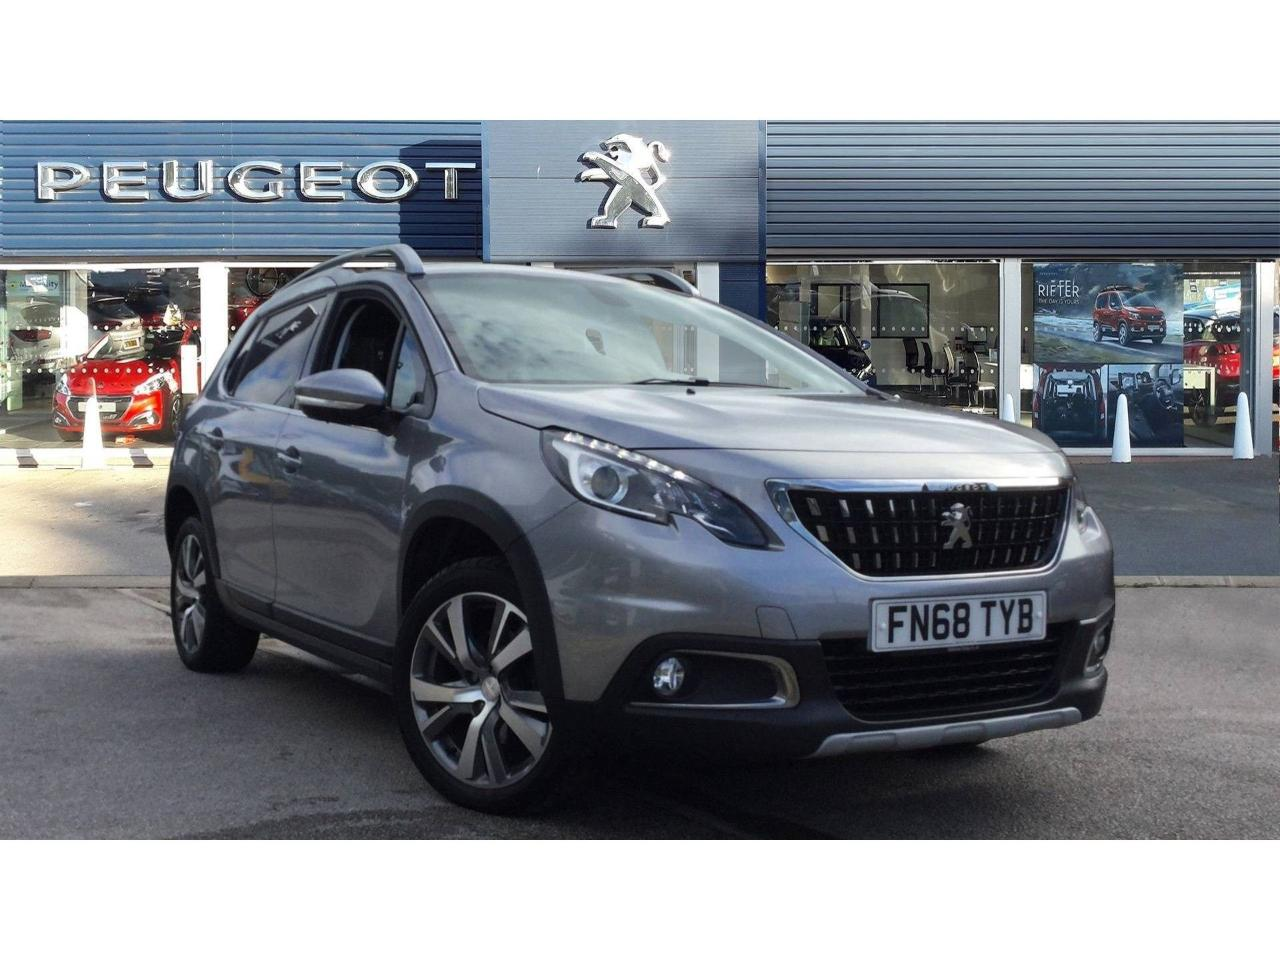 Peugeot 2008 1.5 BlueHDi 100 Allure 5dr Diesel Estate